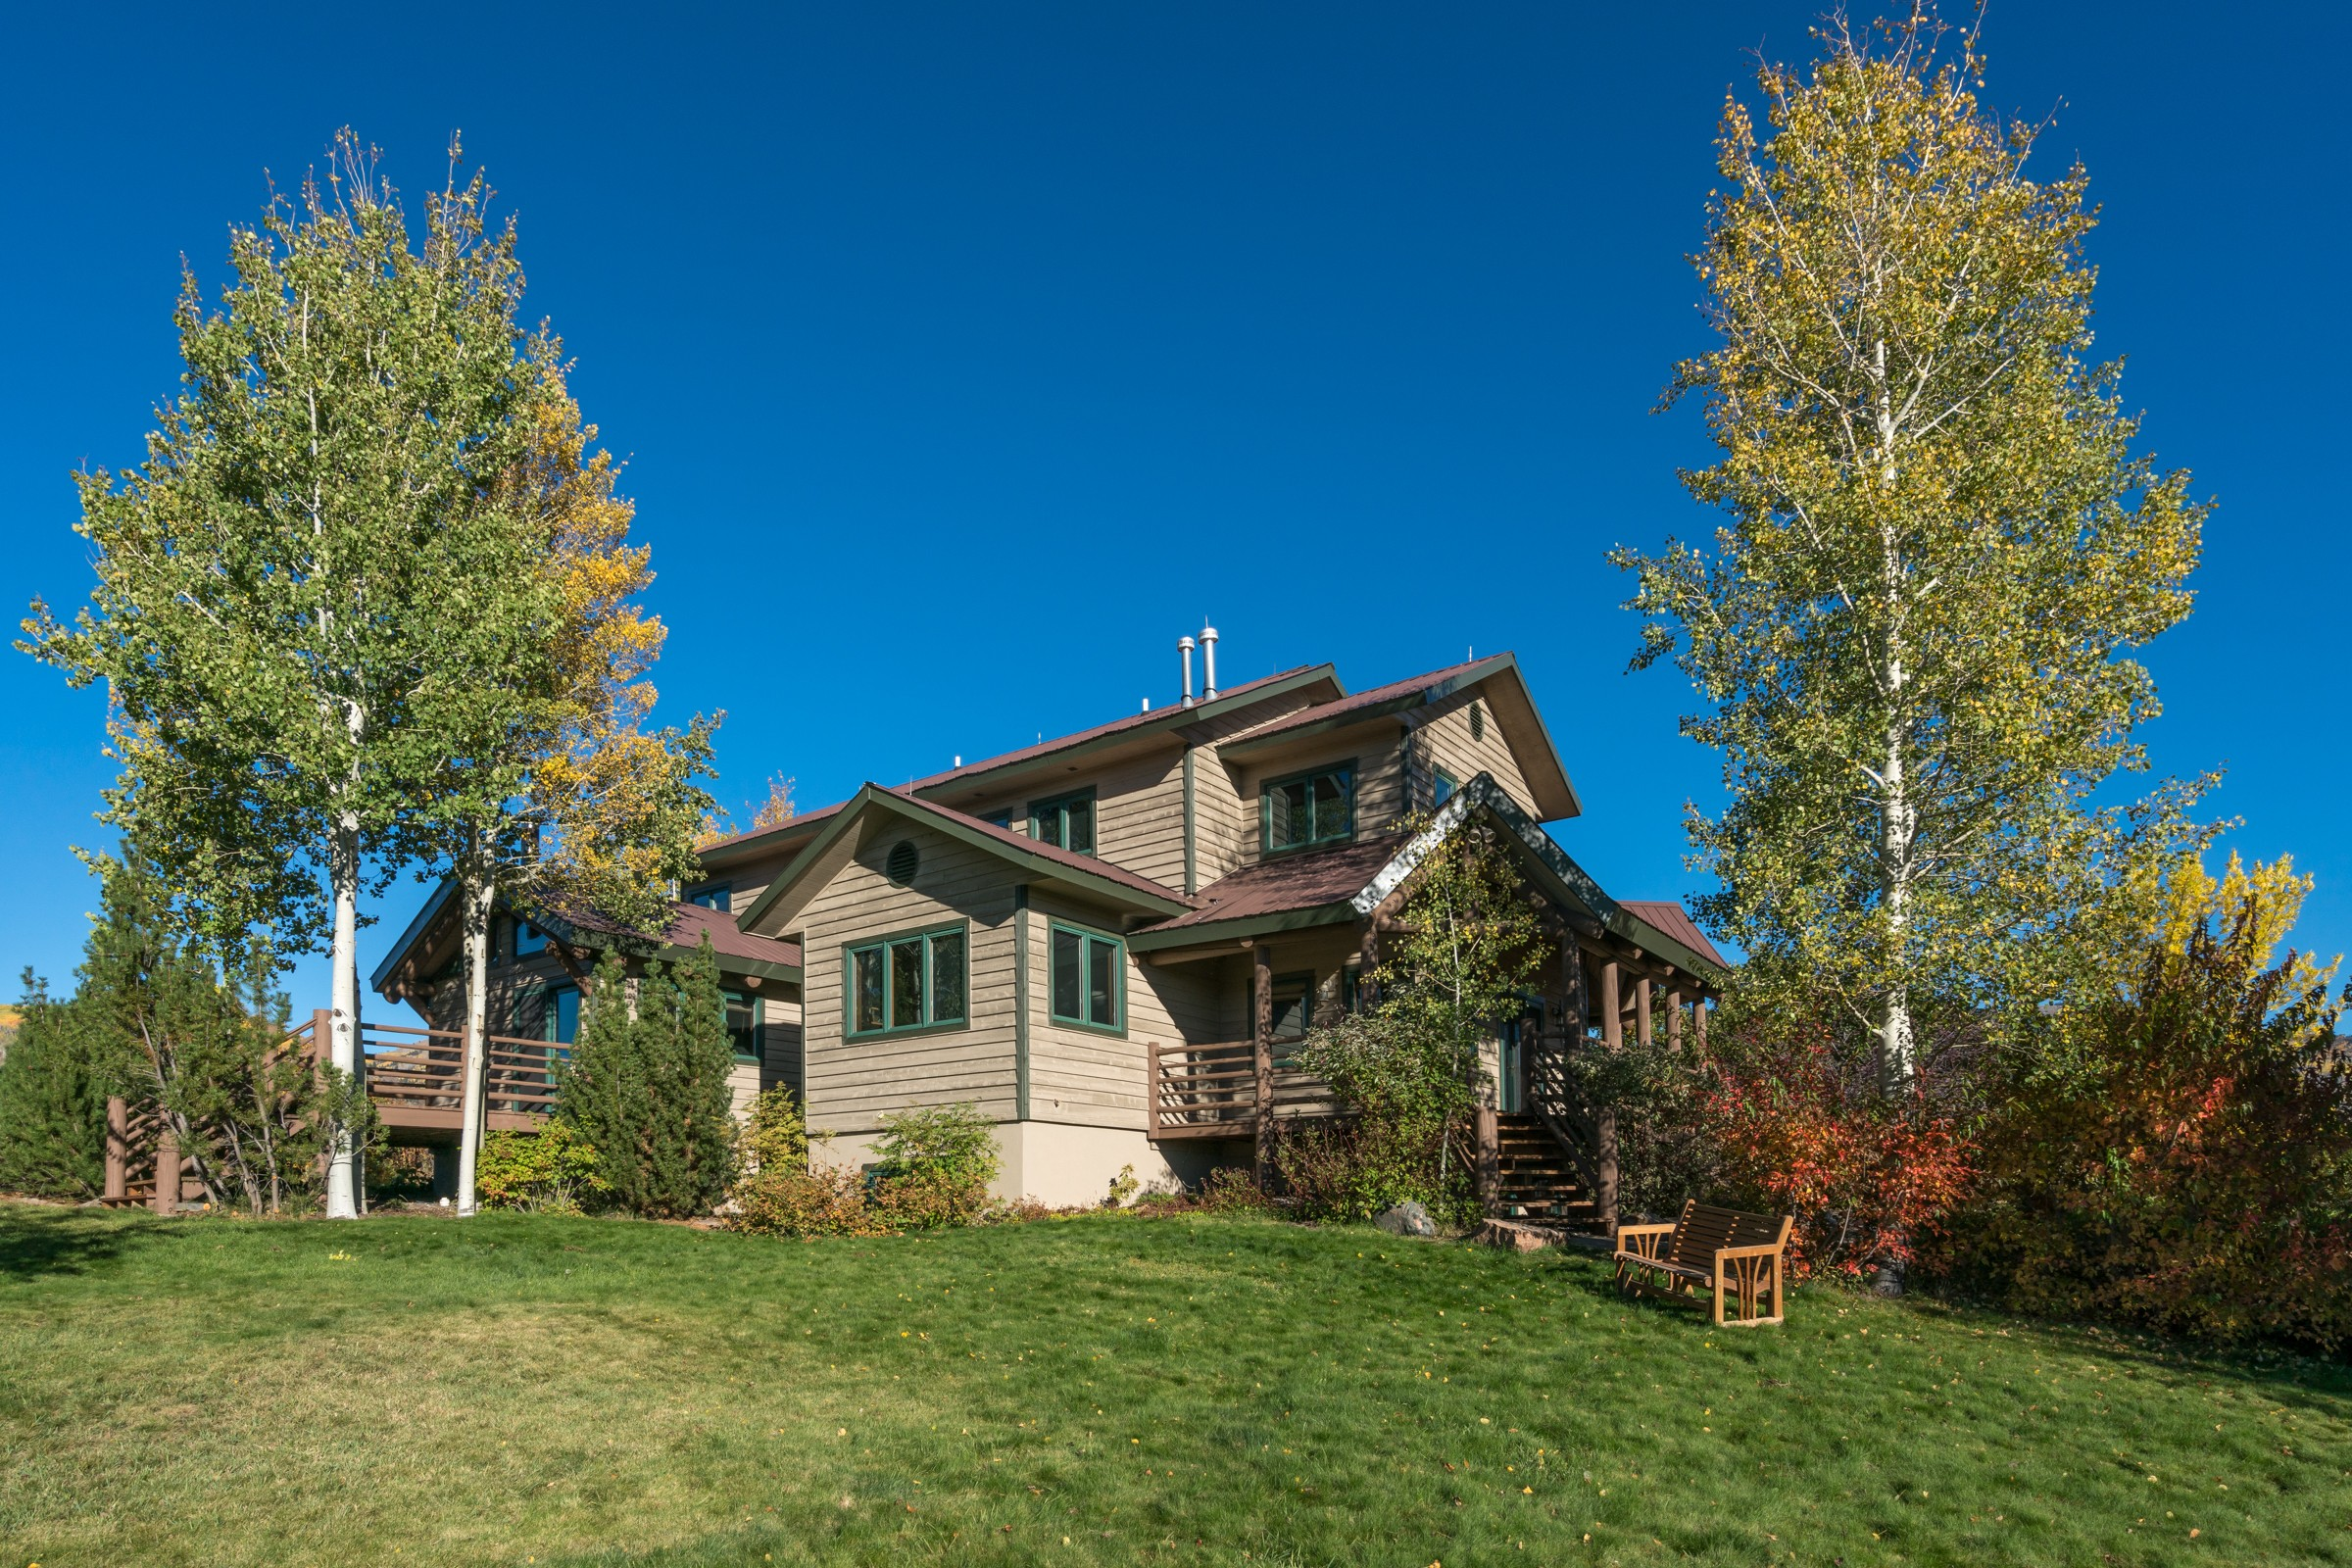 Single Family Home for Sale at Steamboat Bliss 39825 Deerfoot Avenue Steamboat Springs, Colorado, 80487 United States